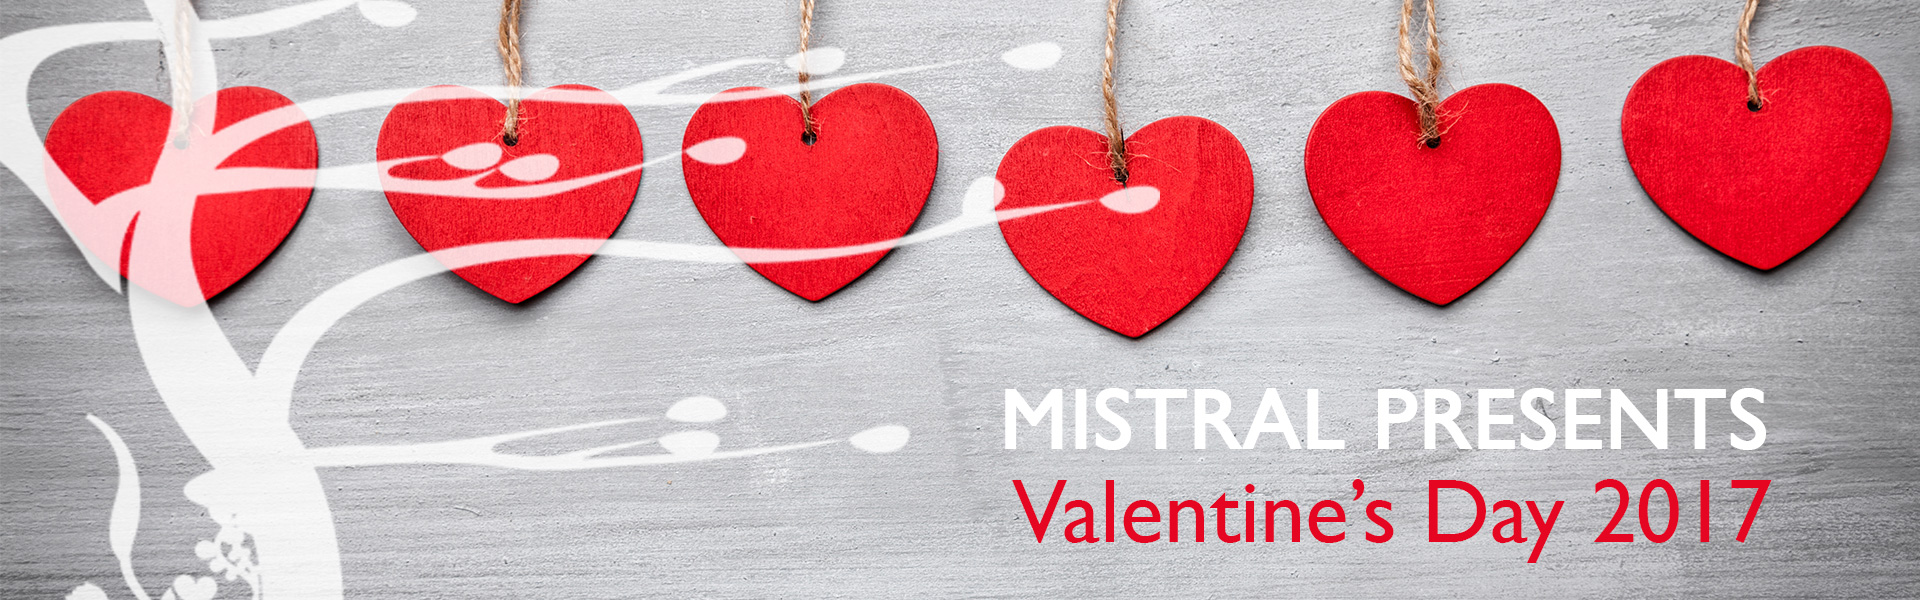 Valentine's Day at Mistral Restaurant Princeton NJ